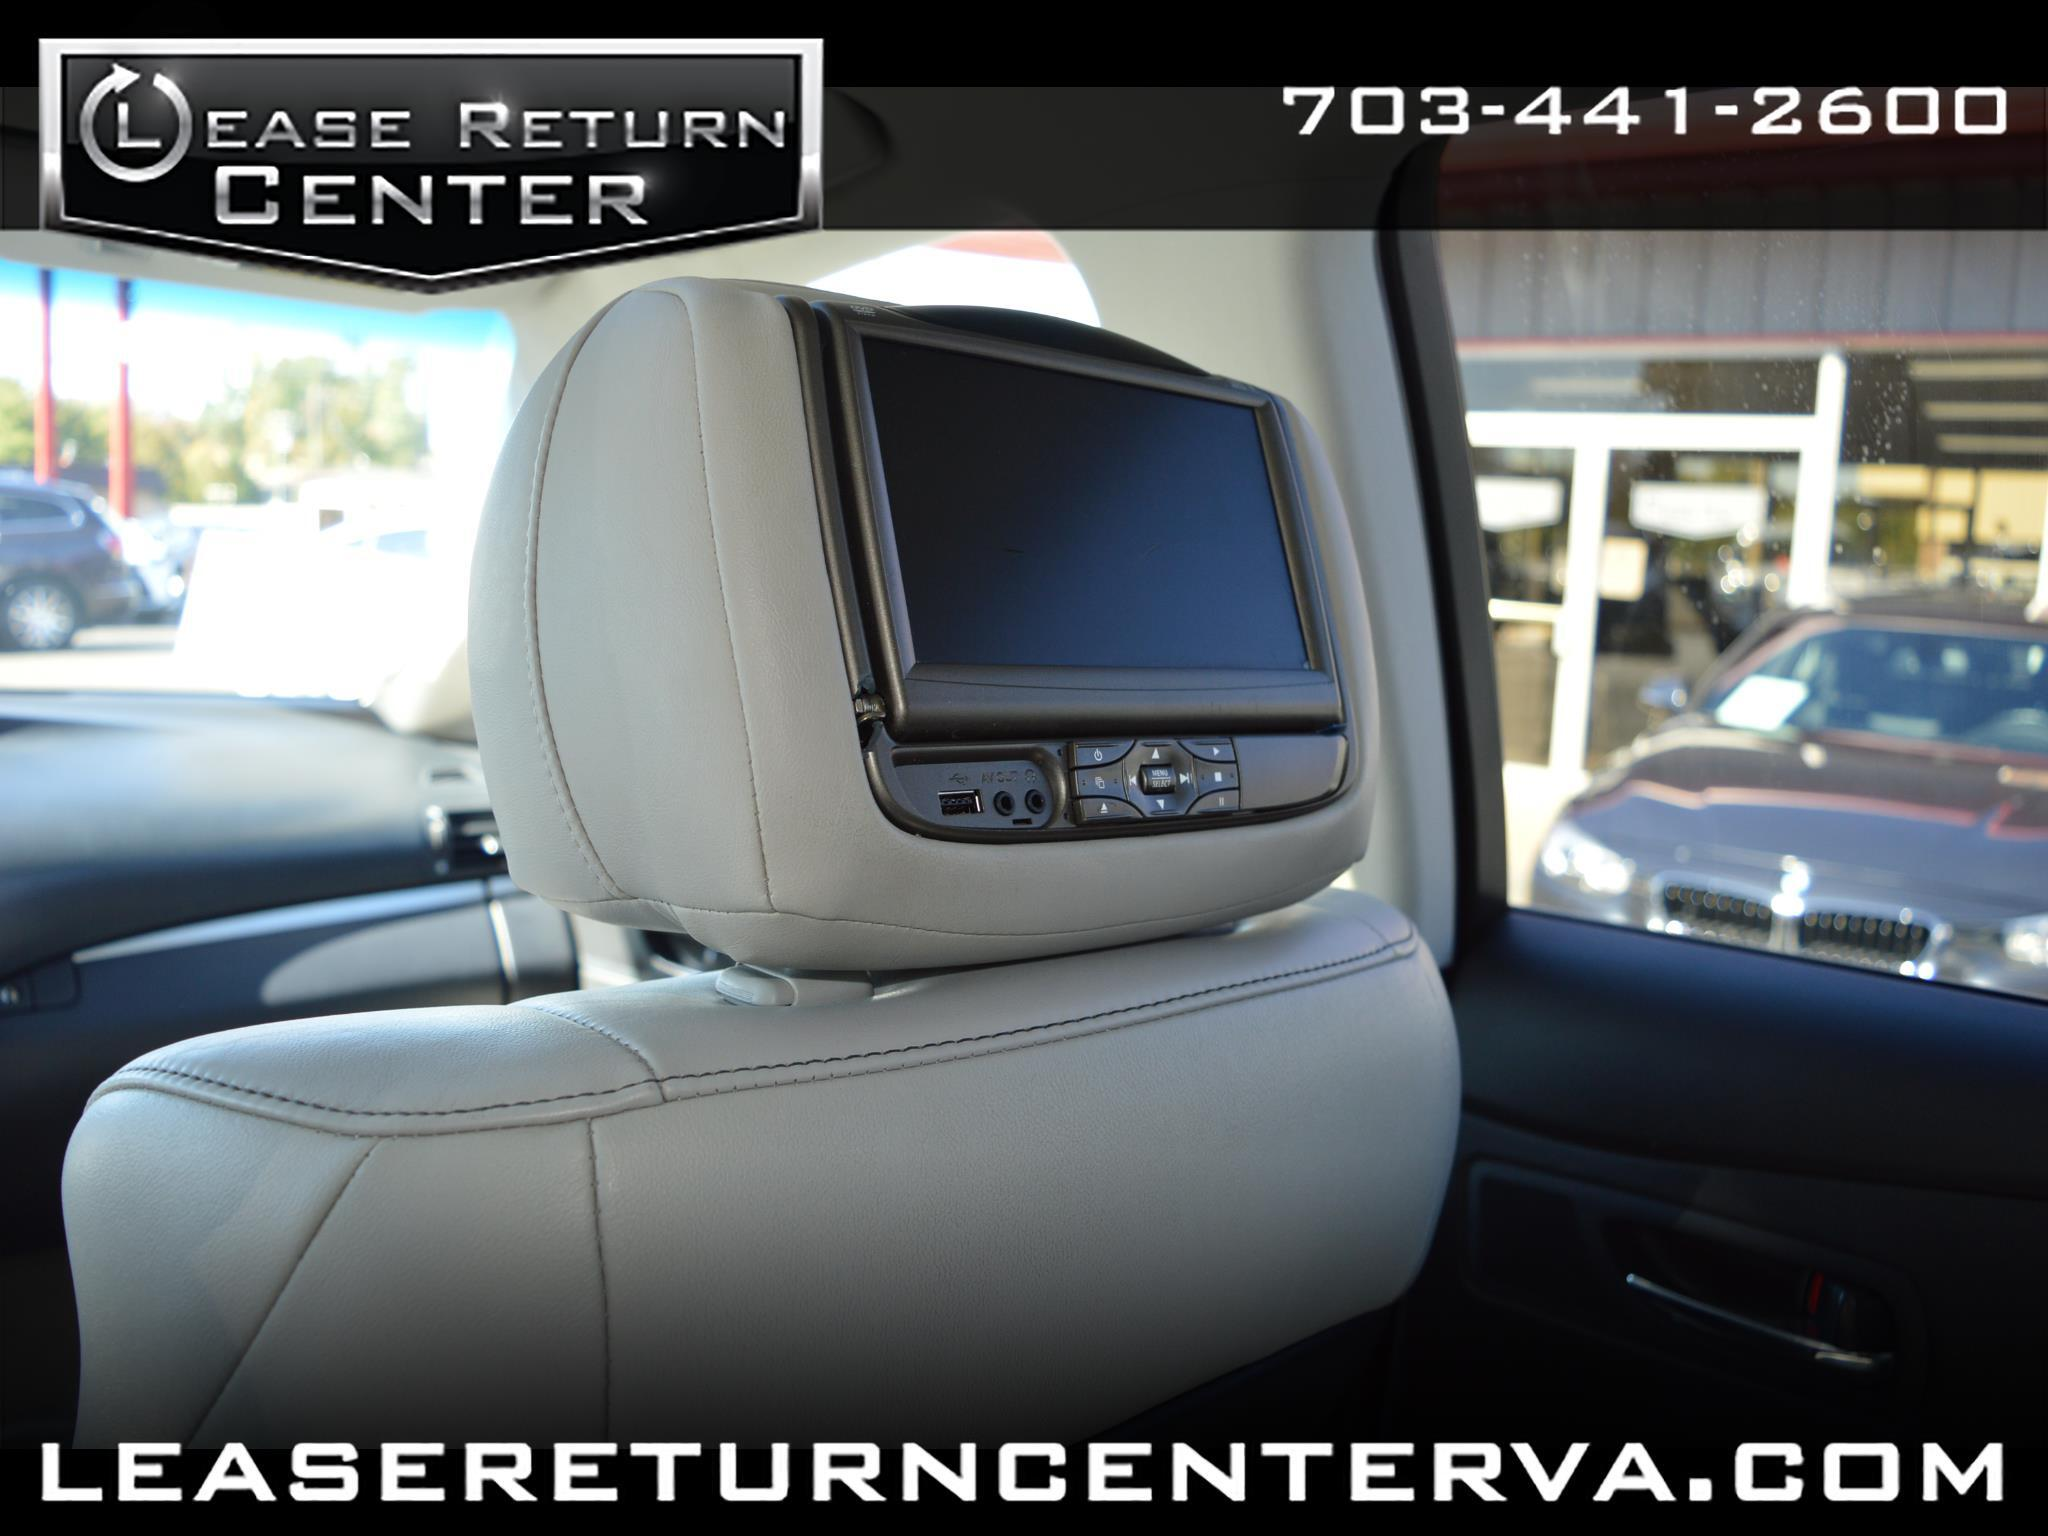 2015 Lexus RX 350 Premium with DVD ENTERTAINMENT SYSTEM